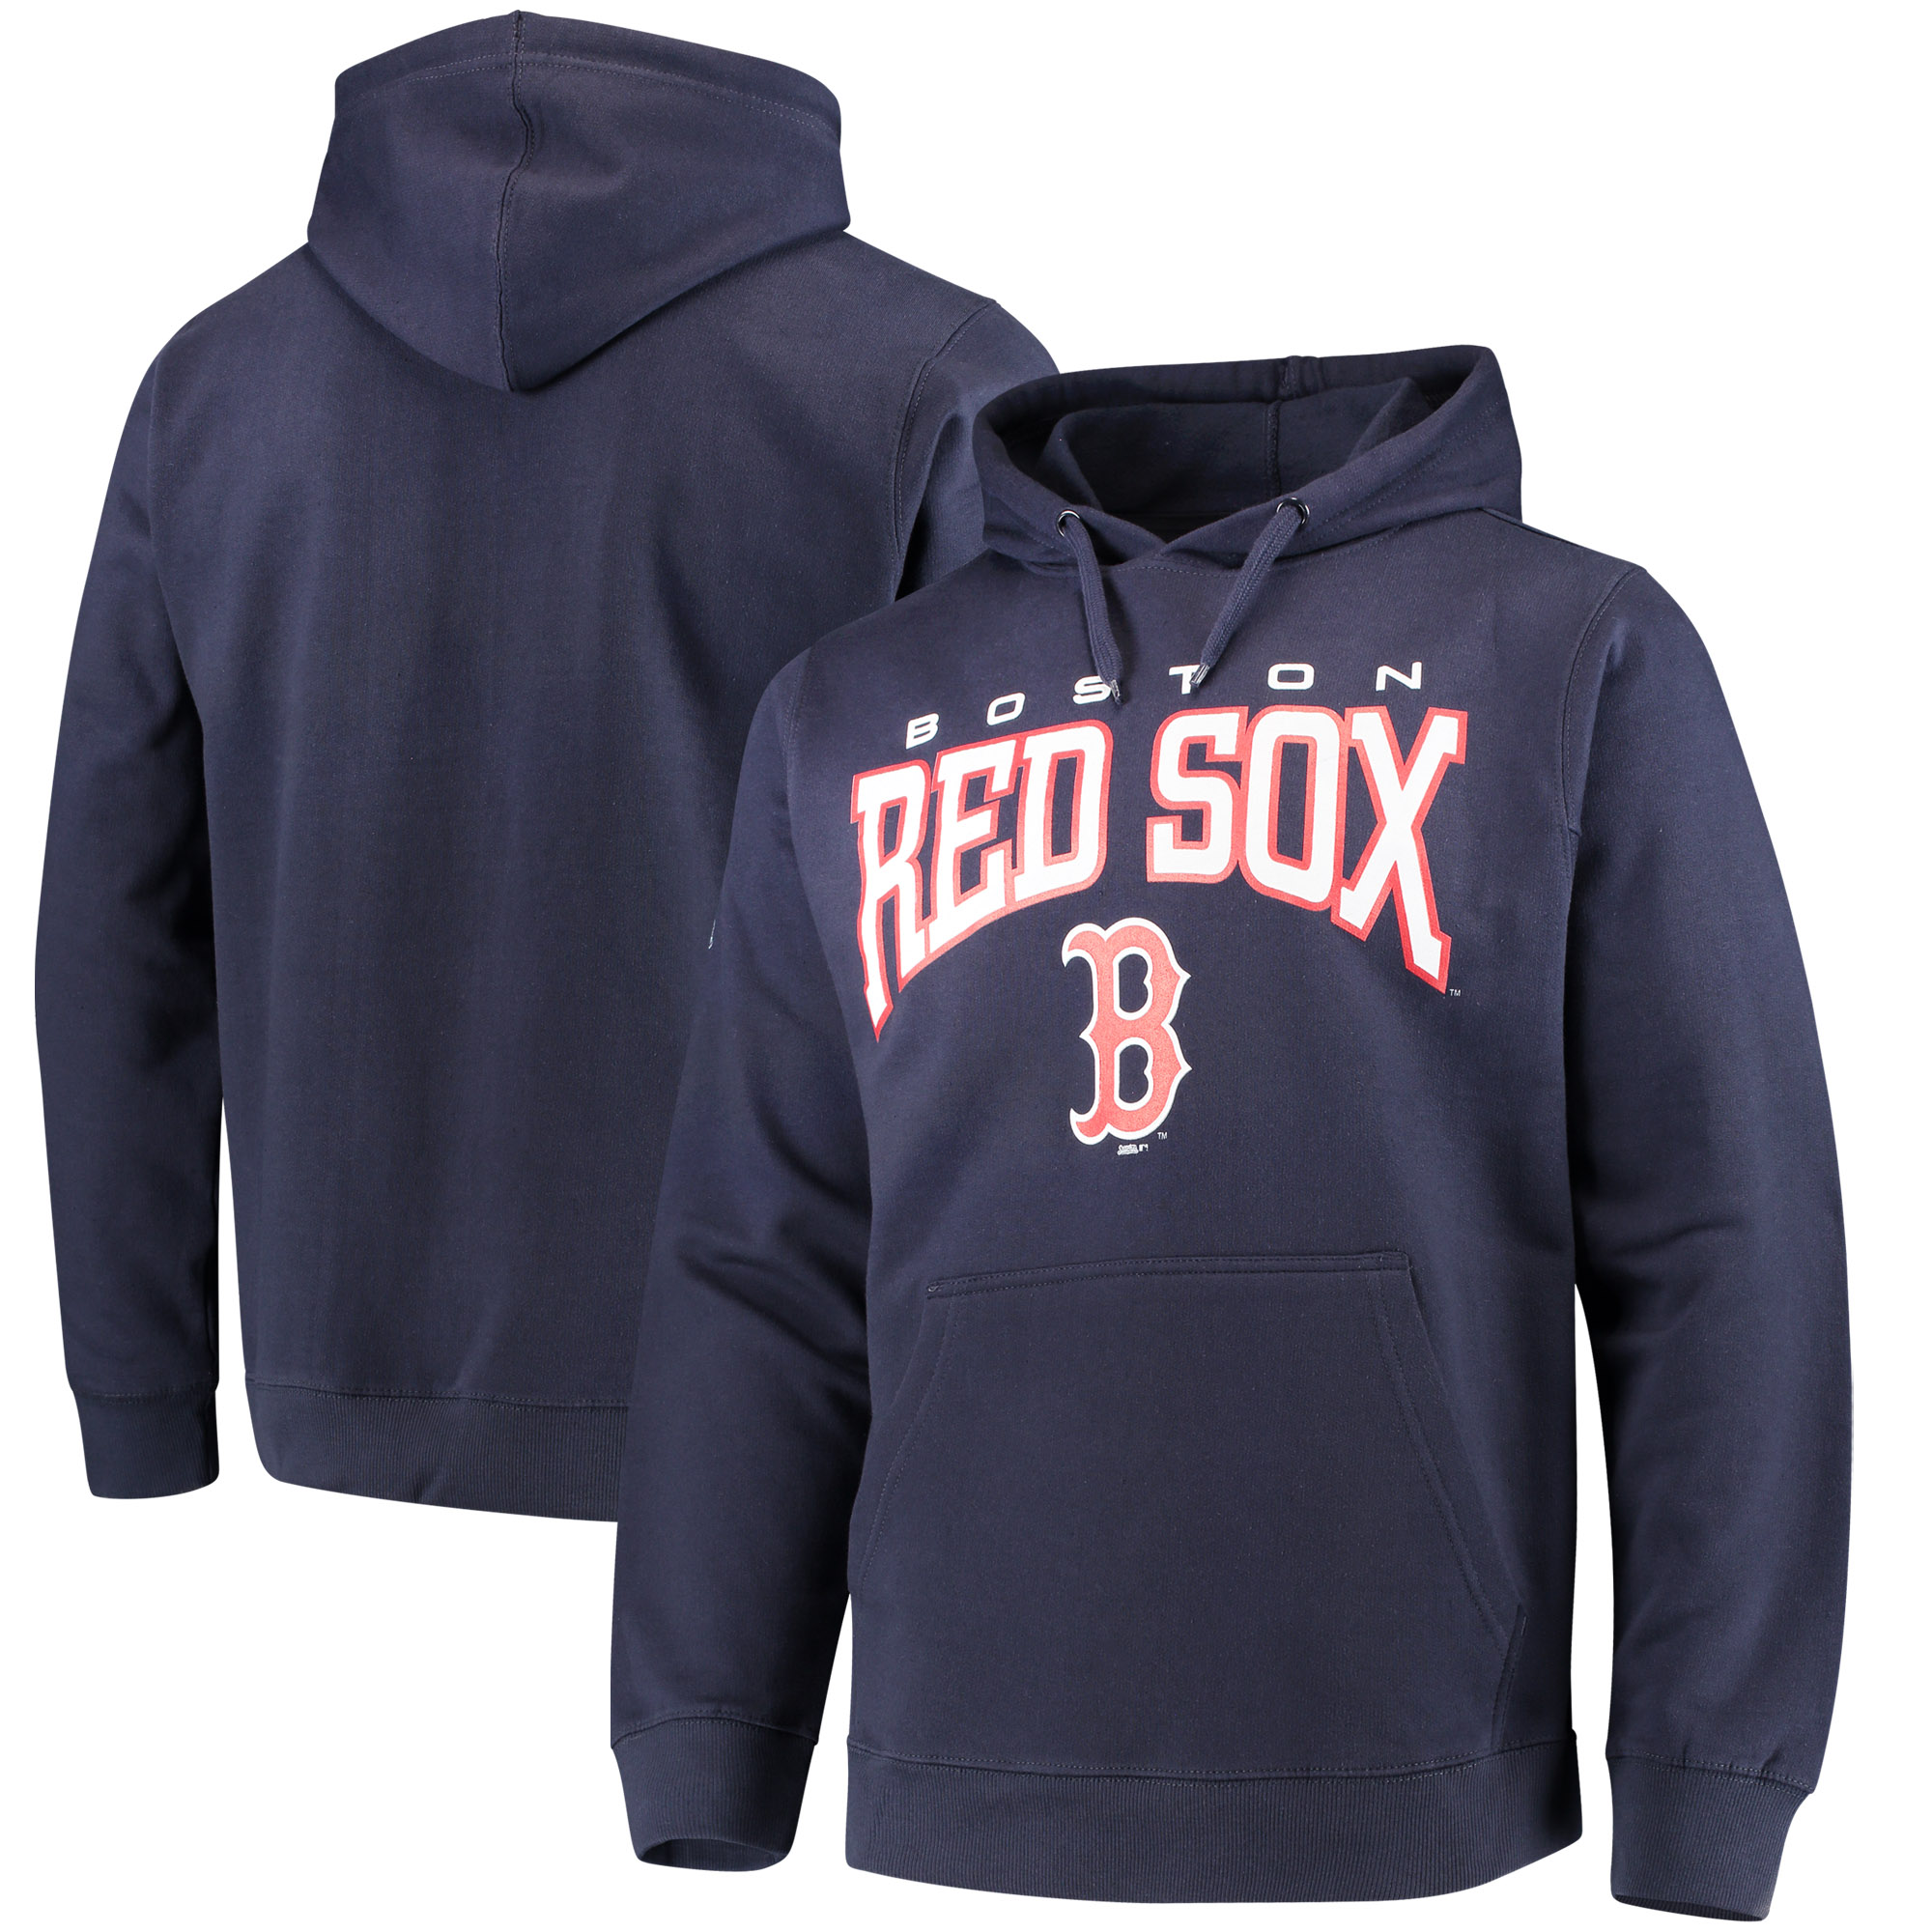 Boston Red Sox Stitches Team Pullover Hoodie - Navy